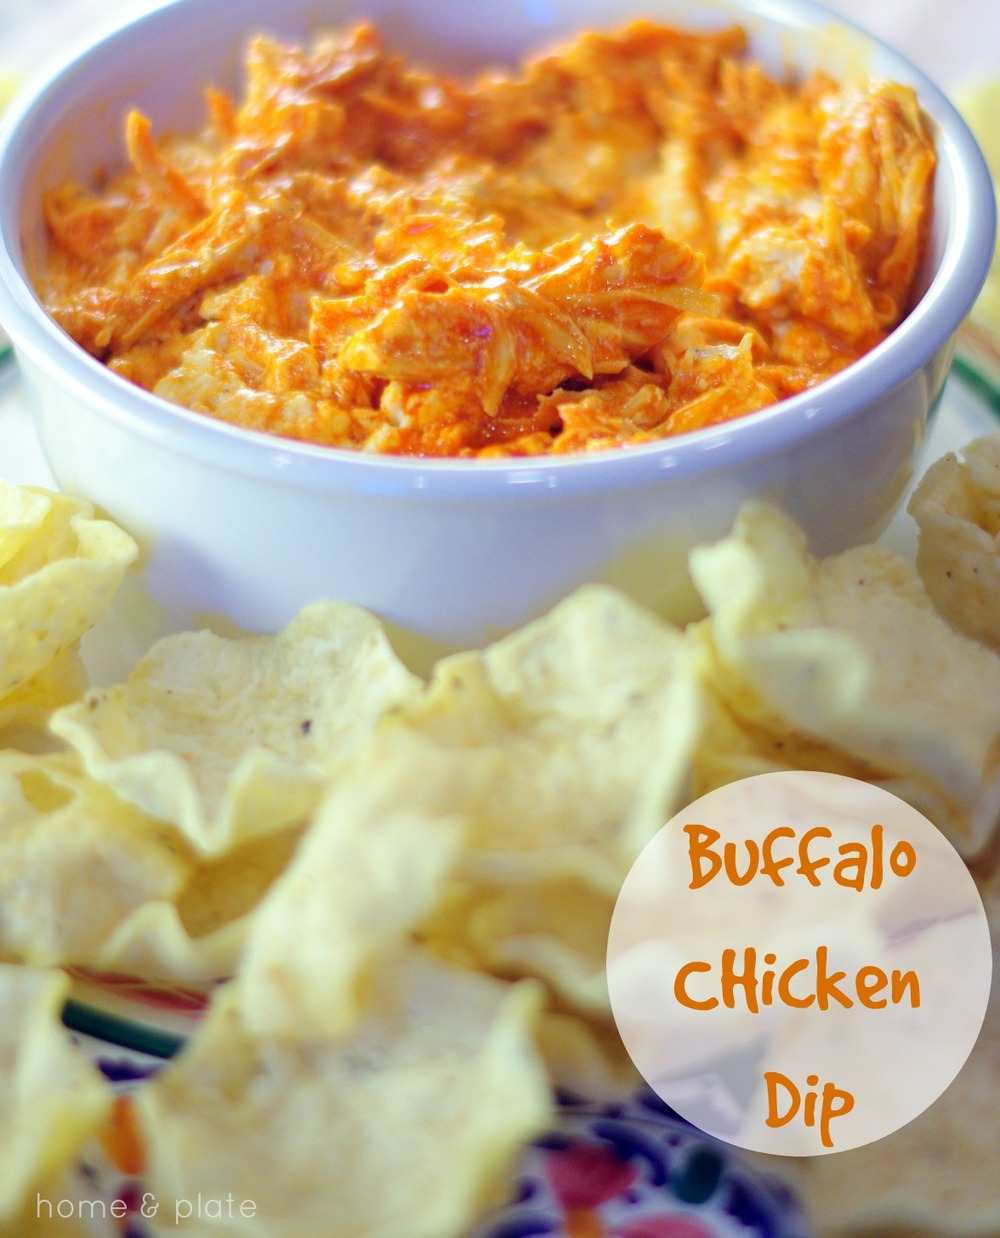 Buffalo Chicken Dip | Home & Plate | www.homeandplate.com | The perfect dip for parties or game day!